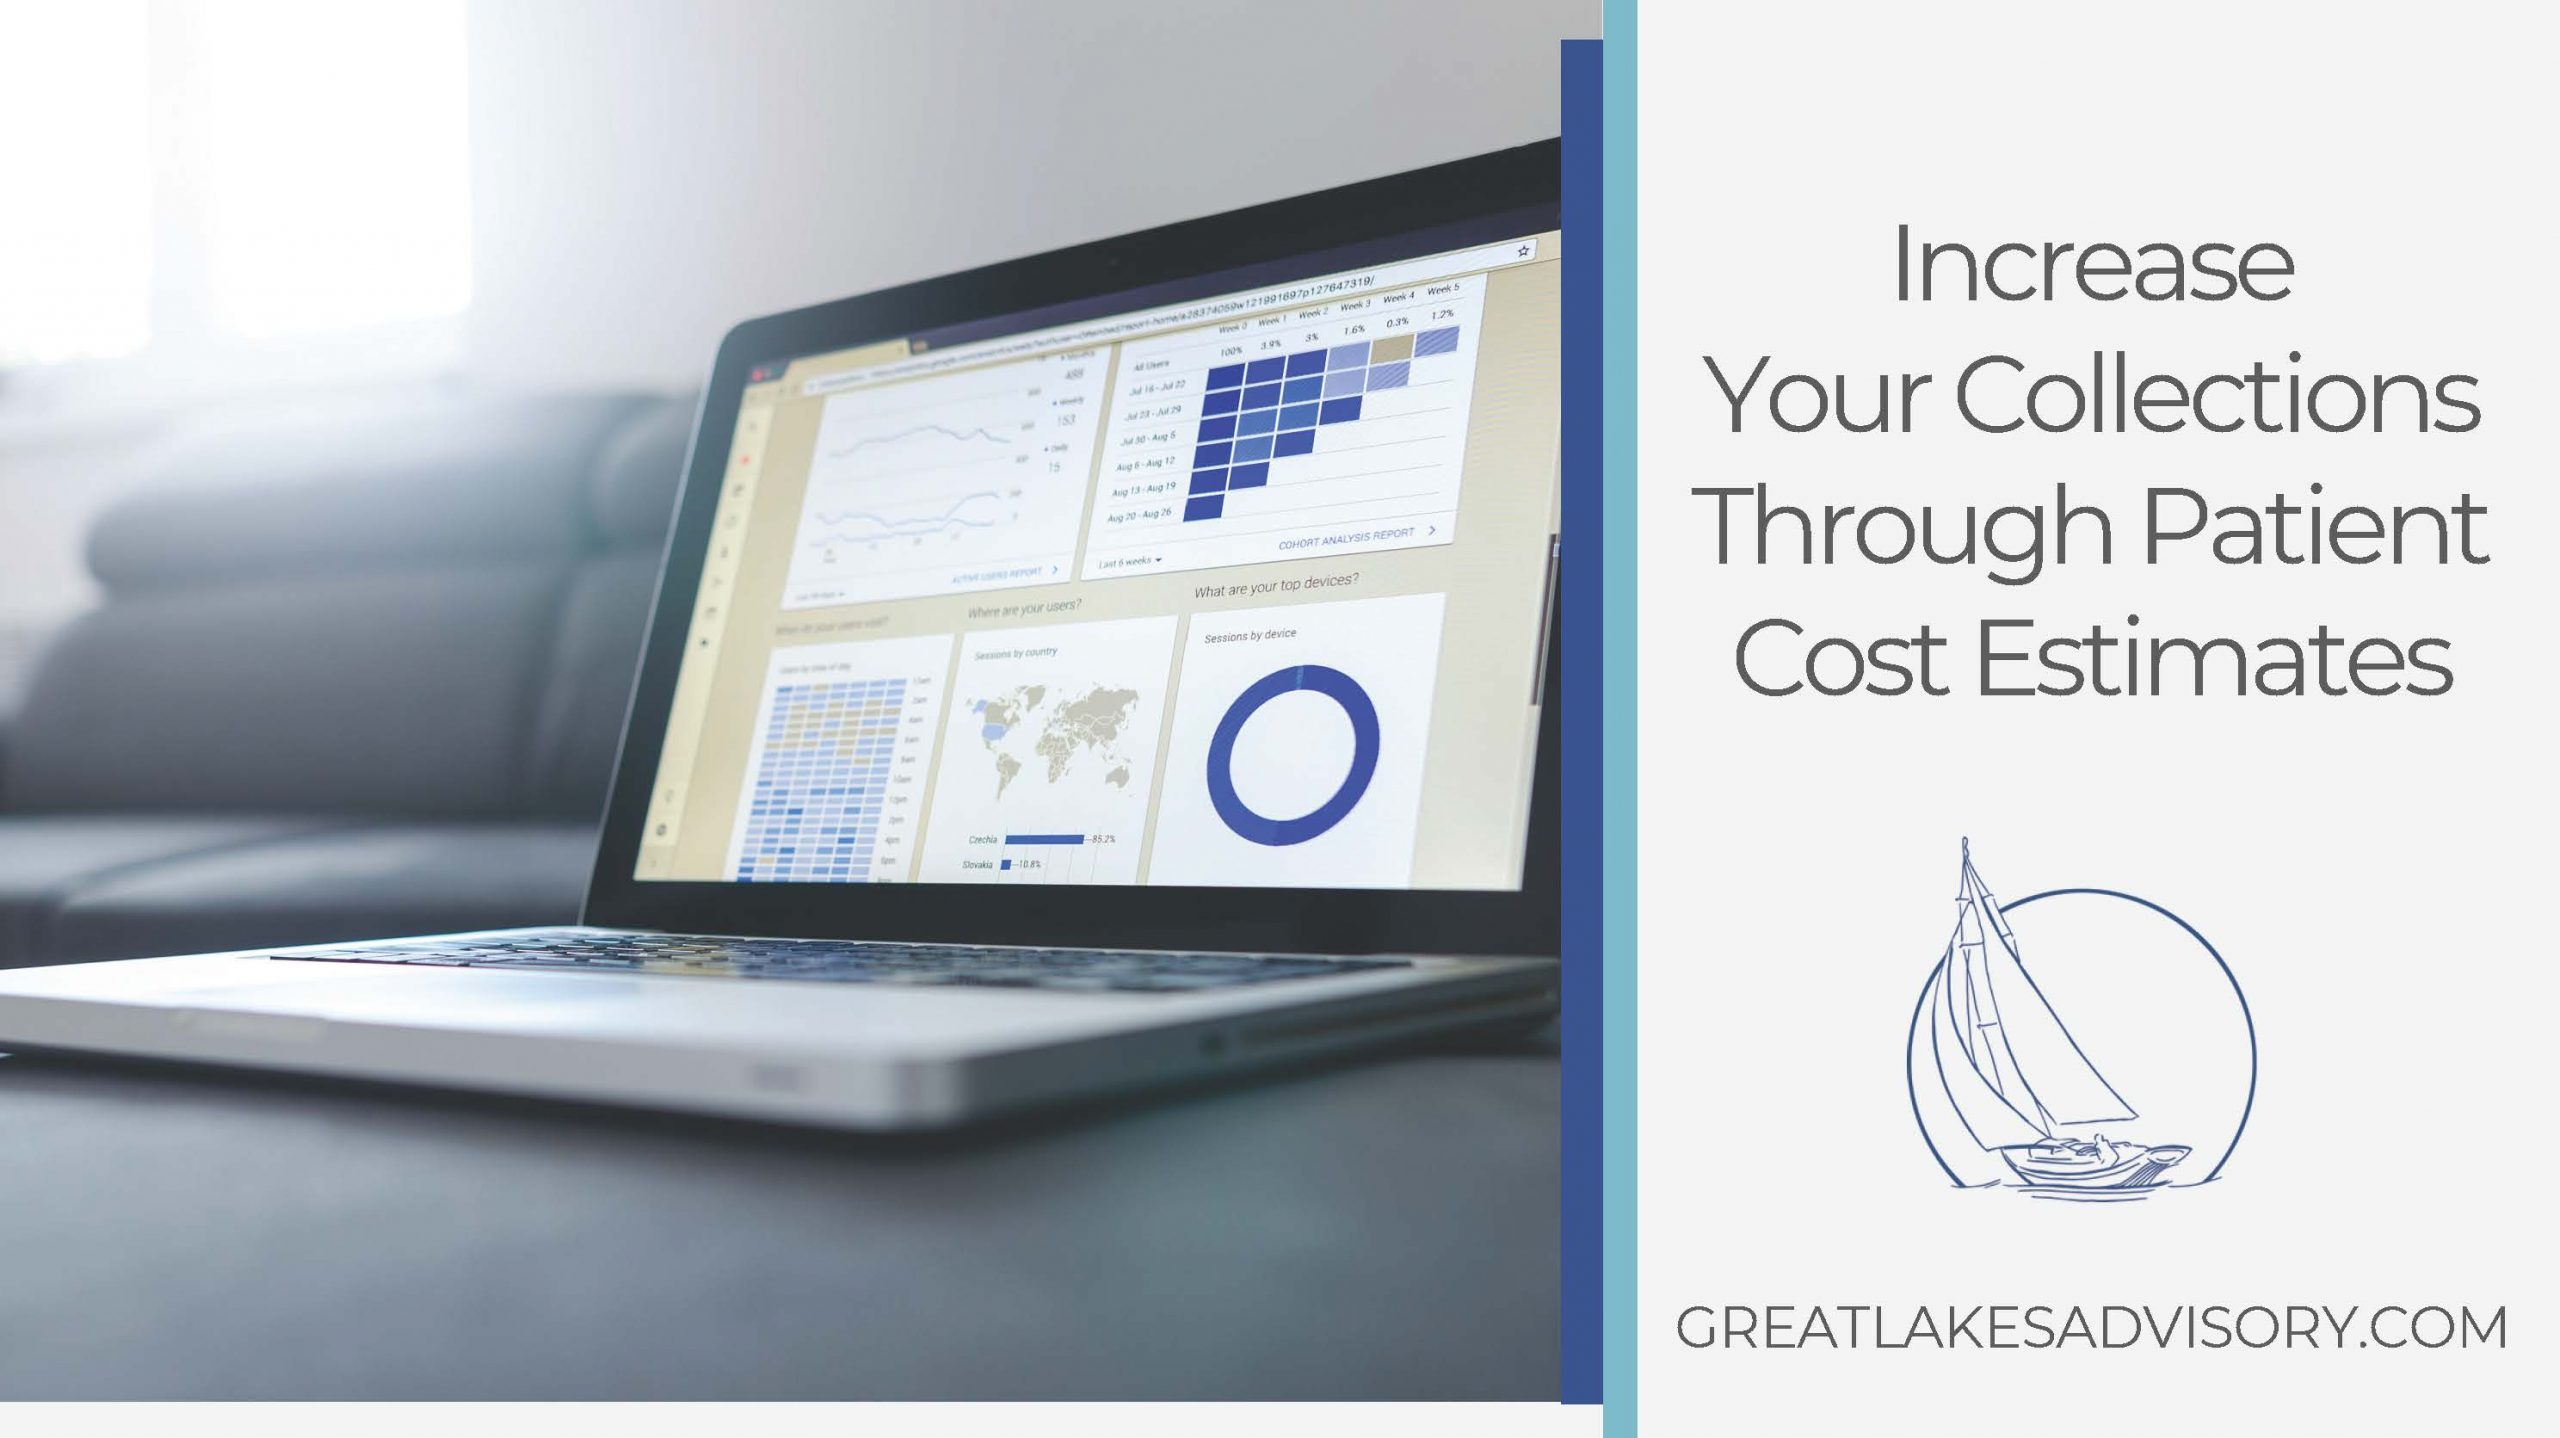 Increase Your Collections Through Patient Cost Estimates